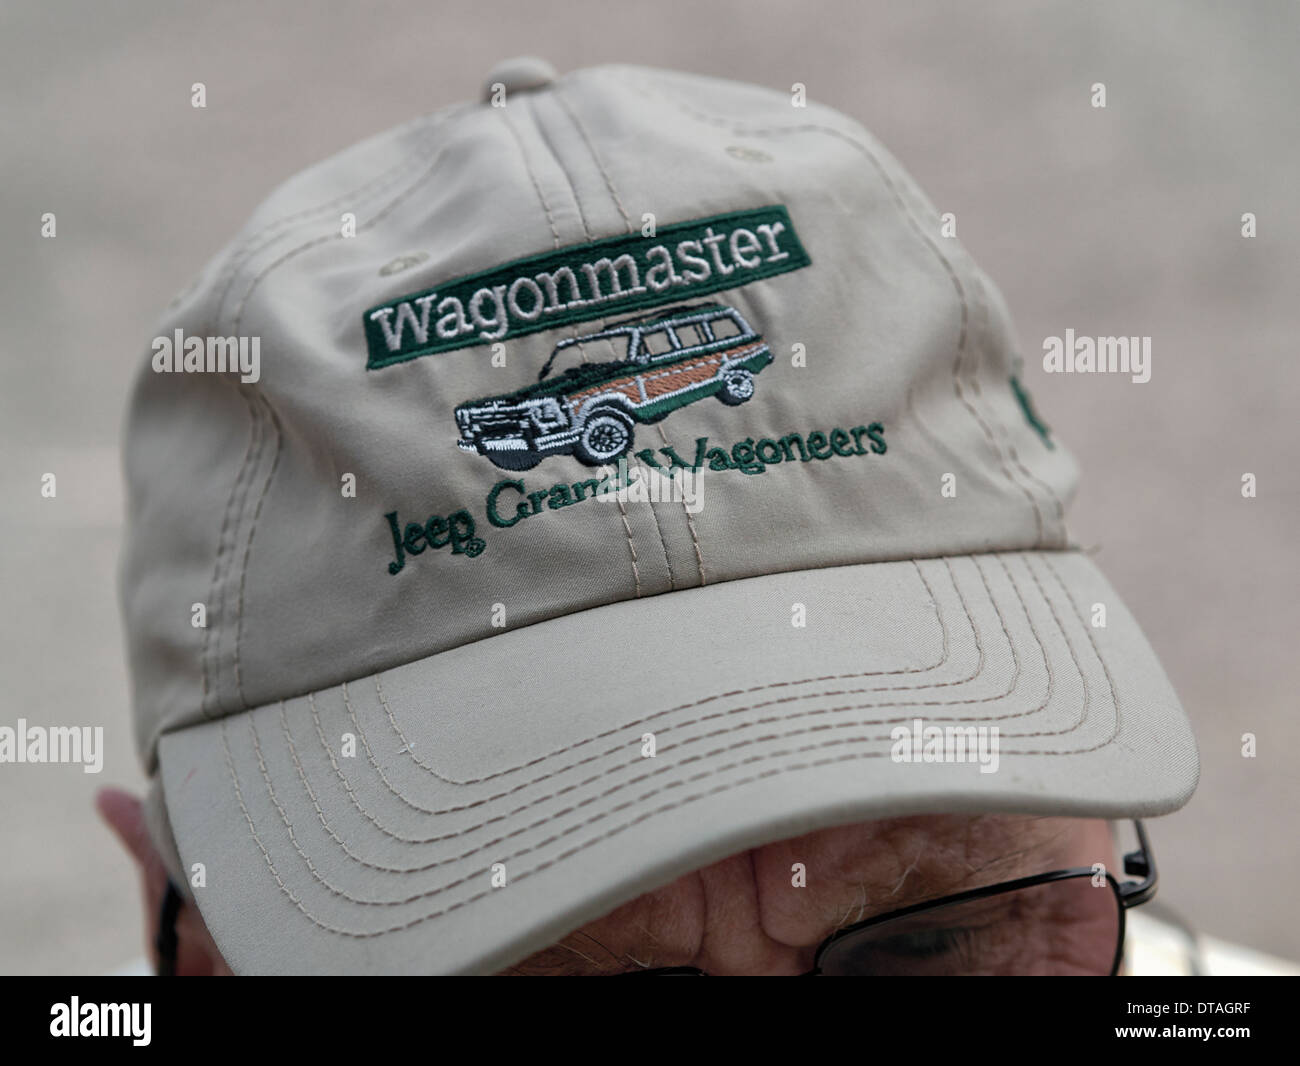 004e45bcecf Man wearing a baseball cap embroidered Jeep Grand Wagoneers. Vehicle  advertising material